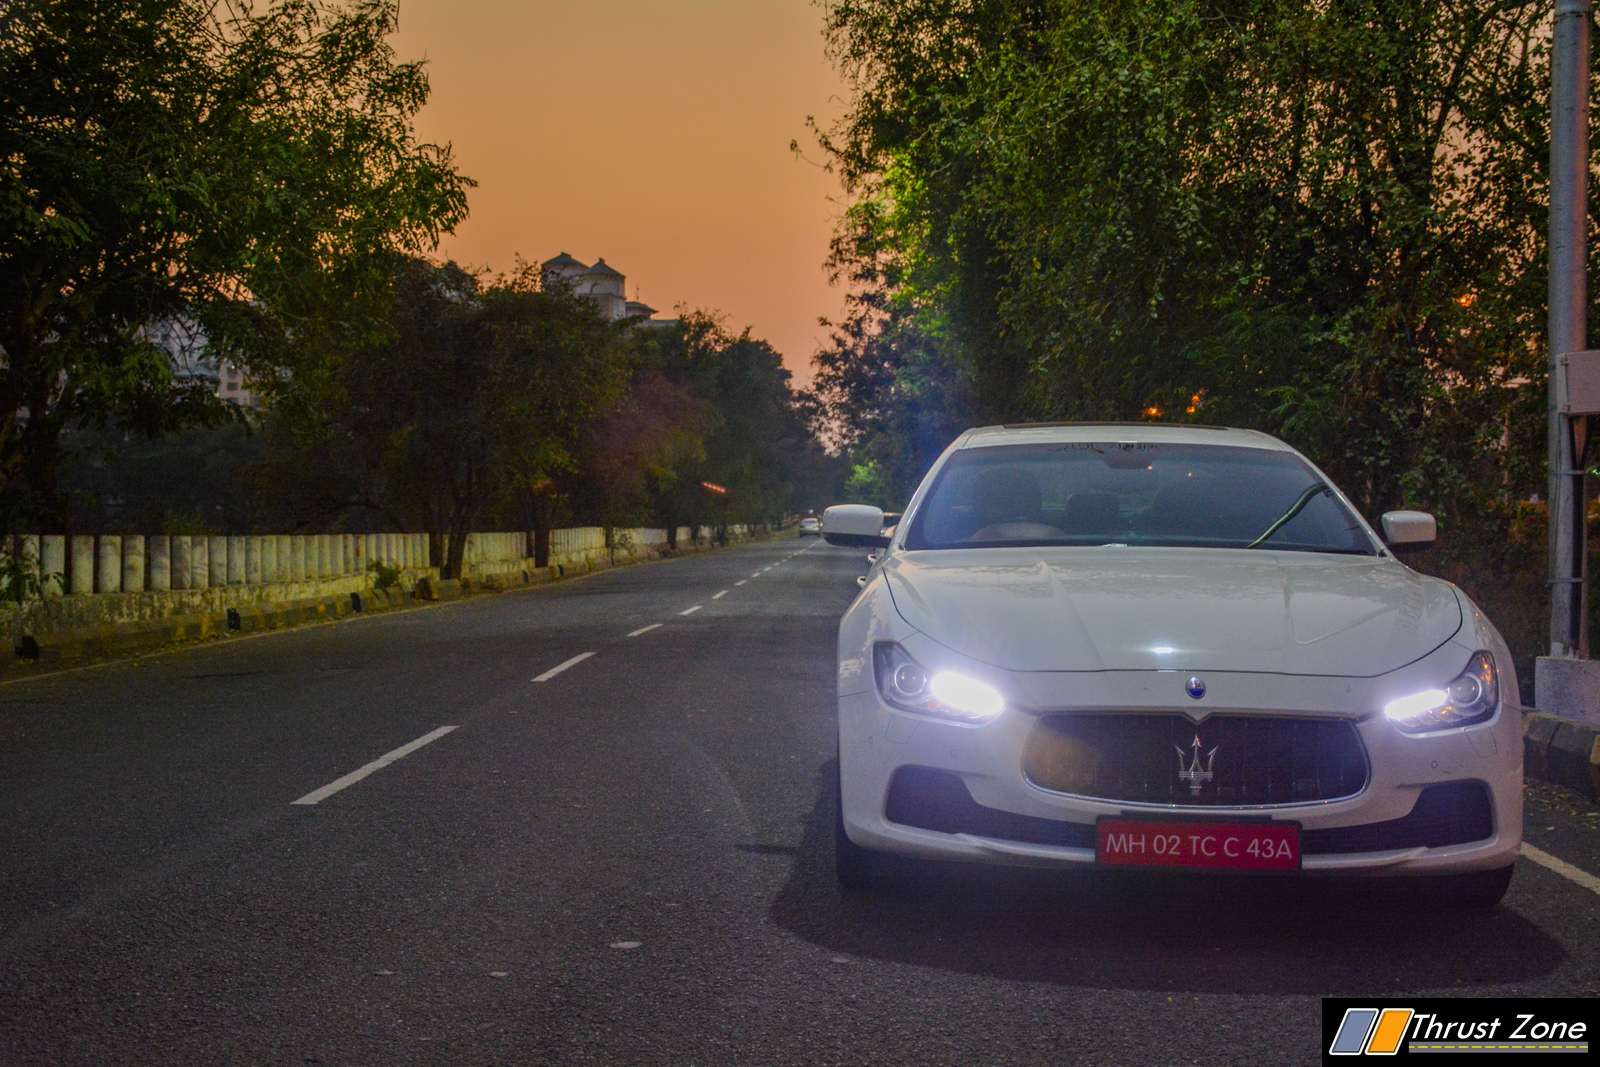 https://www.thrustzone.com/wp-content/uploads/2018/02/Maserati-Ghibli-India-diesel-review-31.jpg